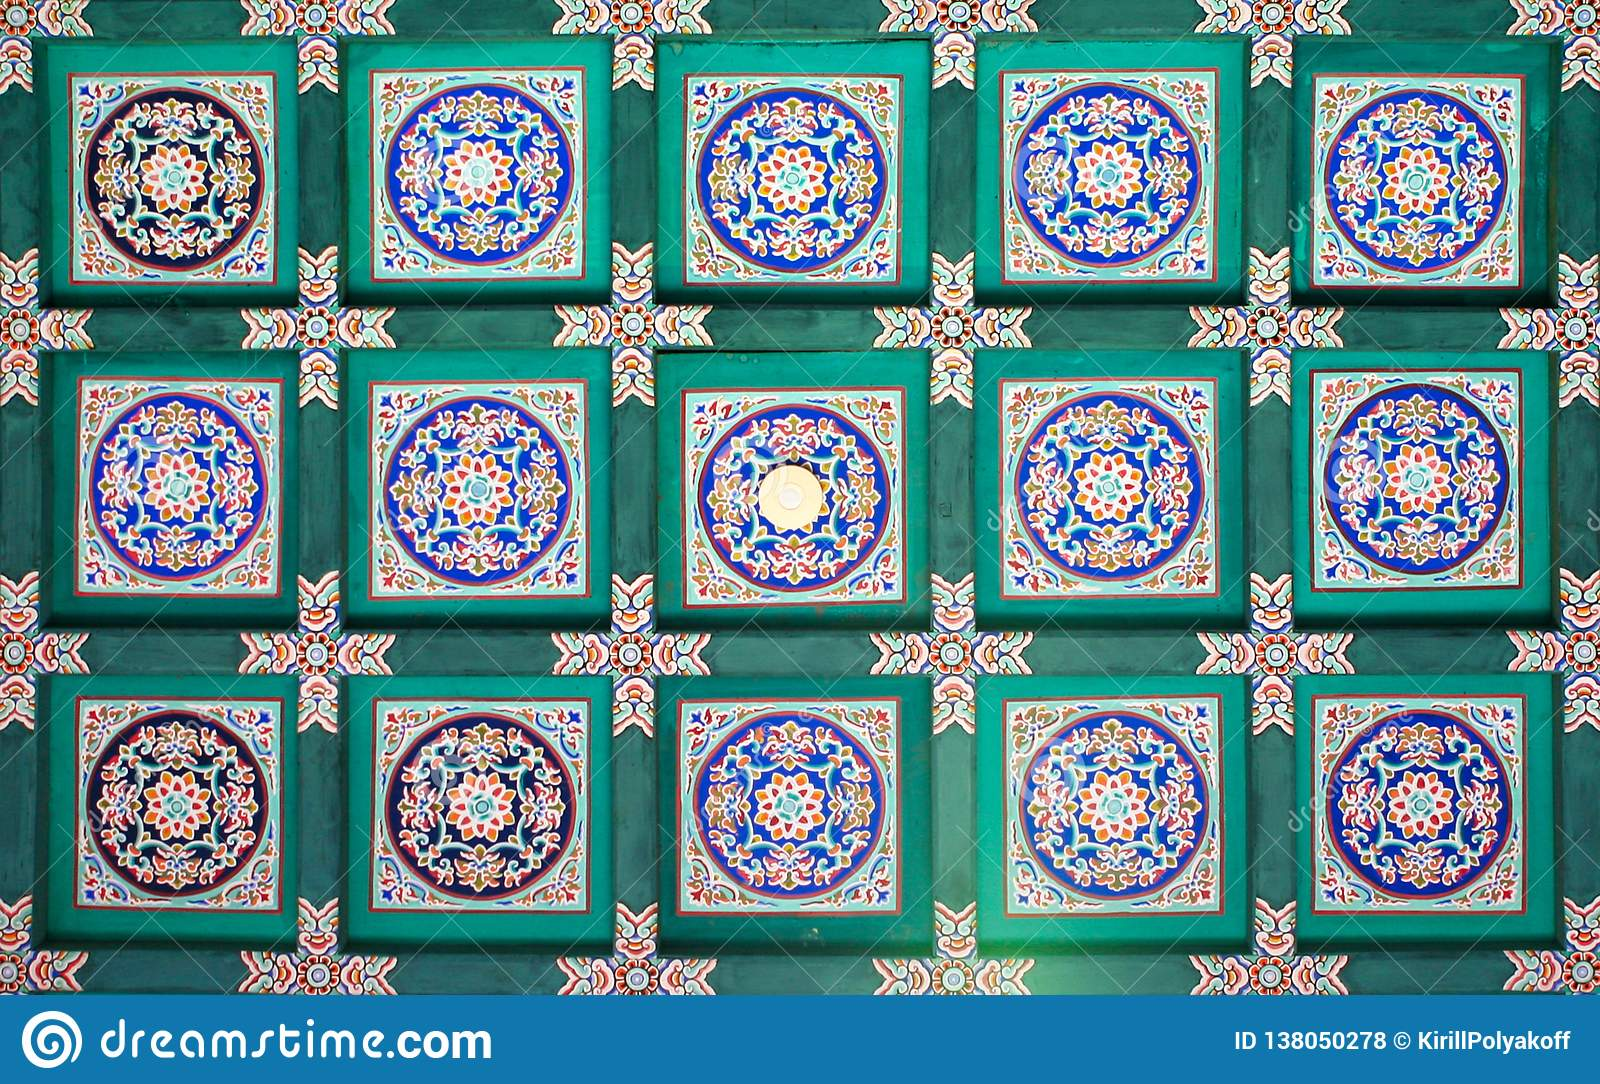 A fragment of the traditional pattern on the ceiling of the Long Corridor of the most interesting sights of the Summer Palace in B